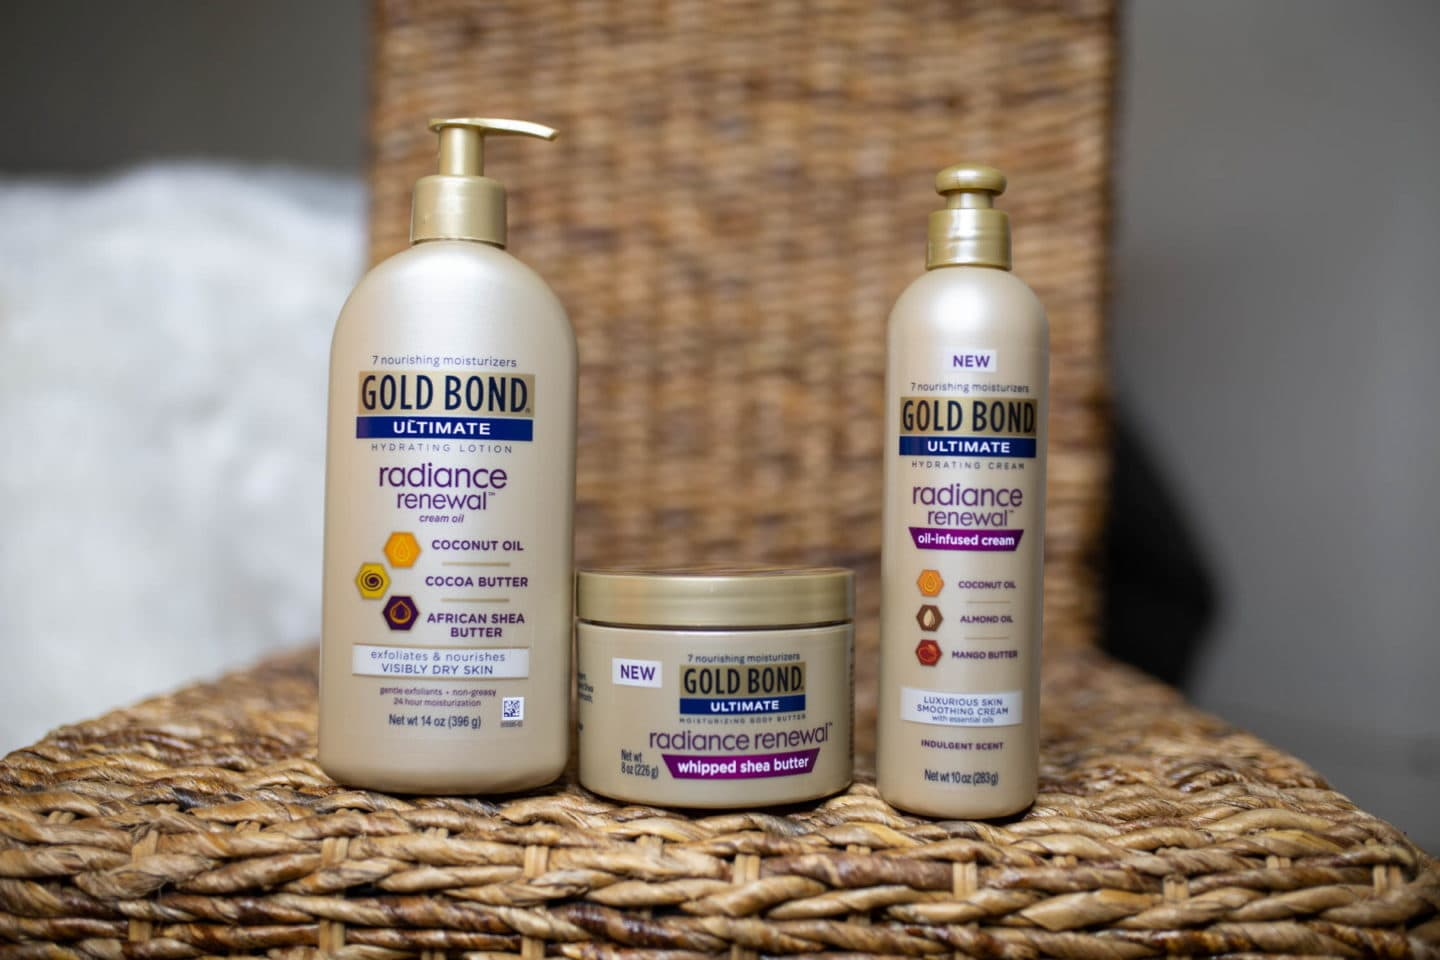 "#skincareproducts #bodycaretipsAs I prepared for another move back to Alaska, I was excited to try Gold Bond for the first time. Read this Gold Bond Radiance Renewal review for my experience this ""intensely moisturizing"" body care lotions. #coconutoilskin"